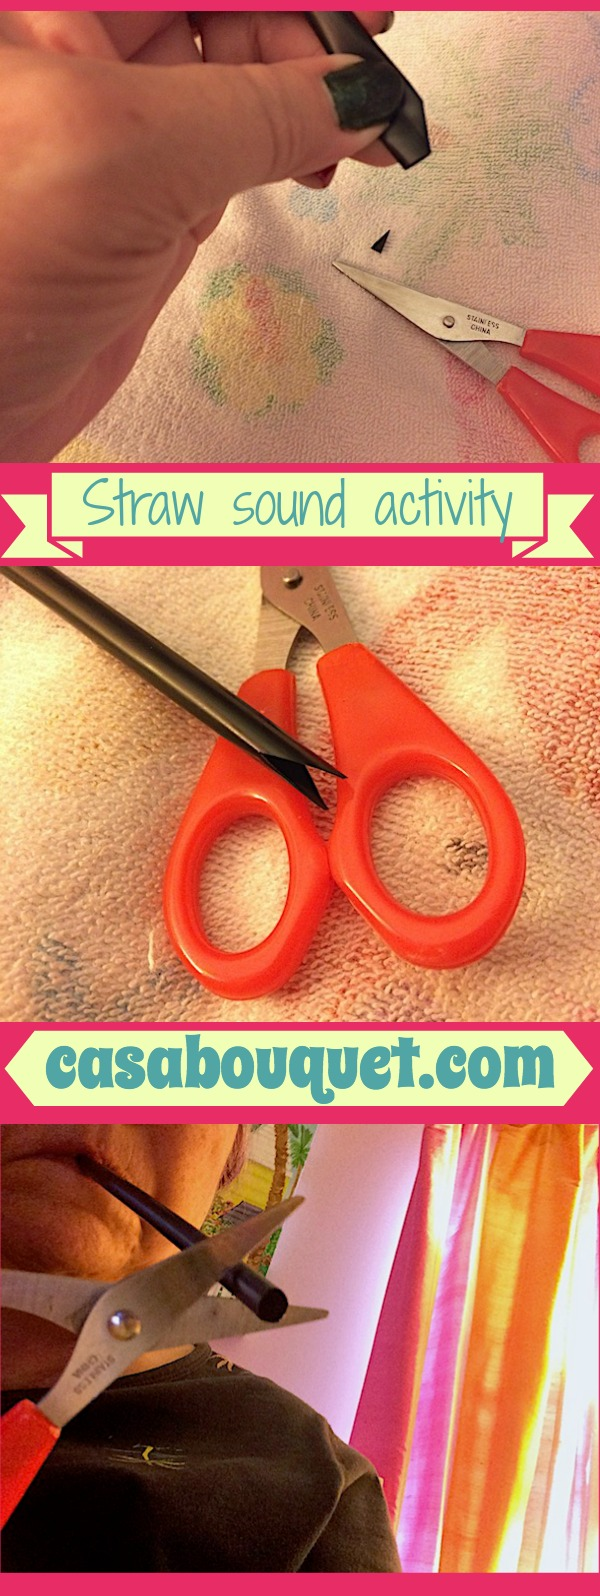 Straw sound activity uses large plastic straws to work as wind instrument. Kids learn sound, waves, frequency!